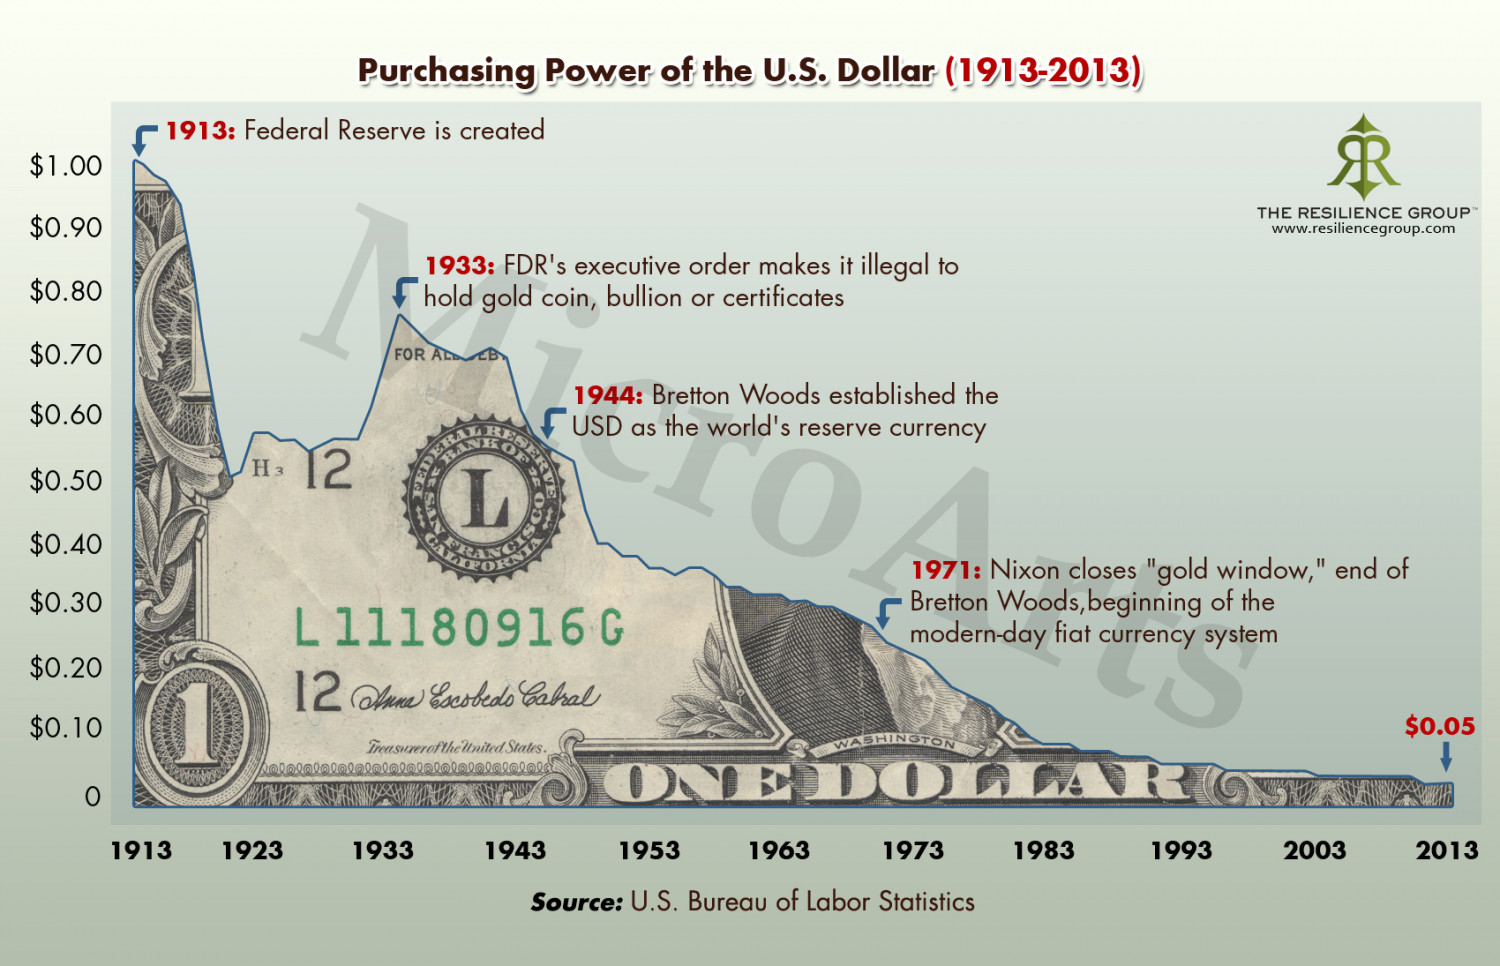 Purchasing Power of the U.S. Dollar 1913 to 2013 Infographic